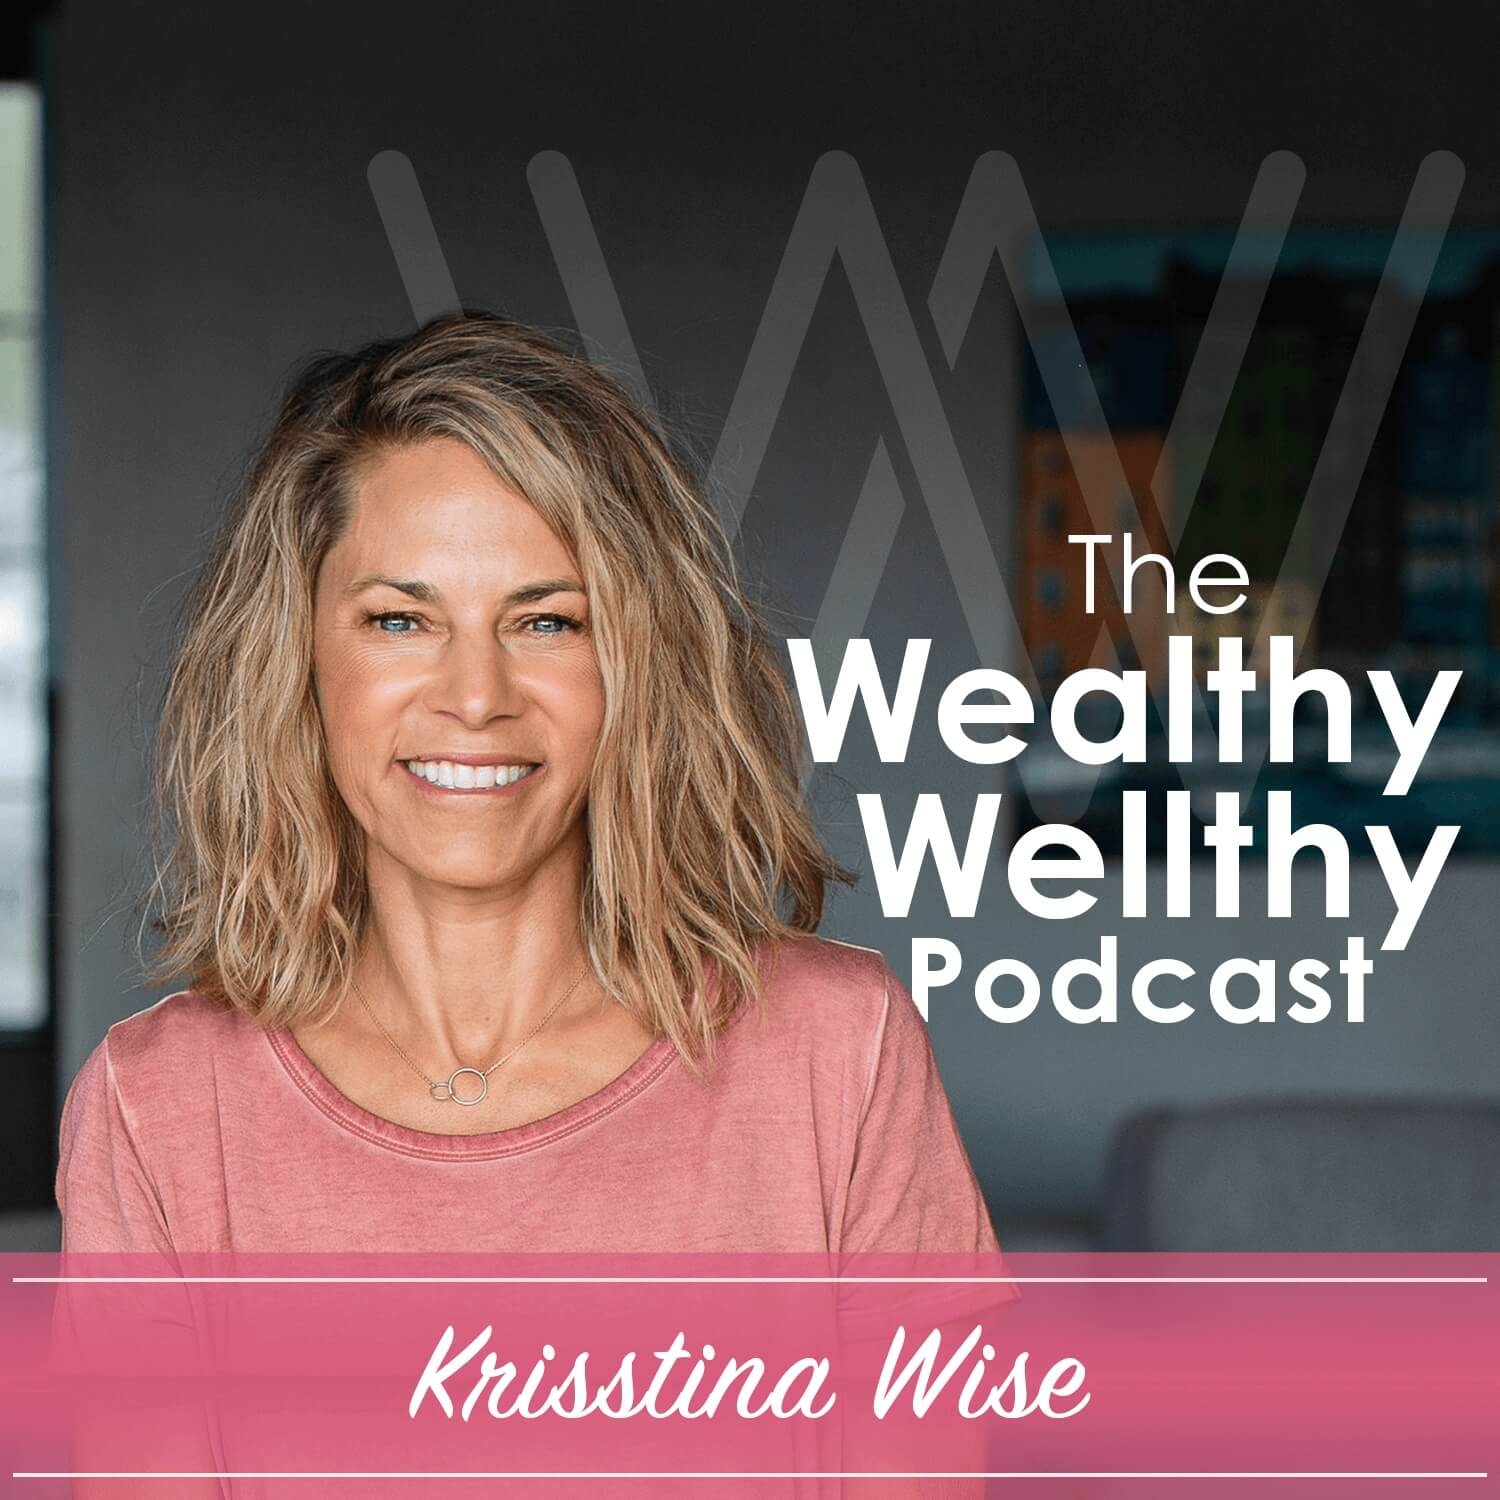 Wealthy Wellthy Podcast